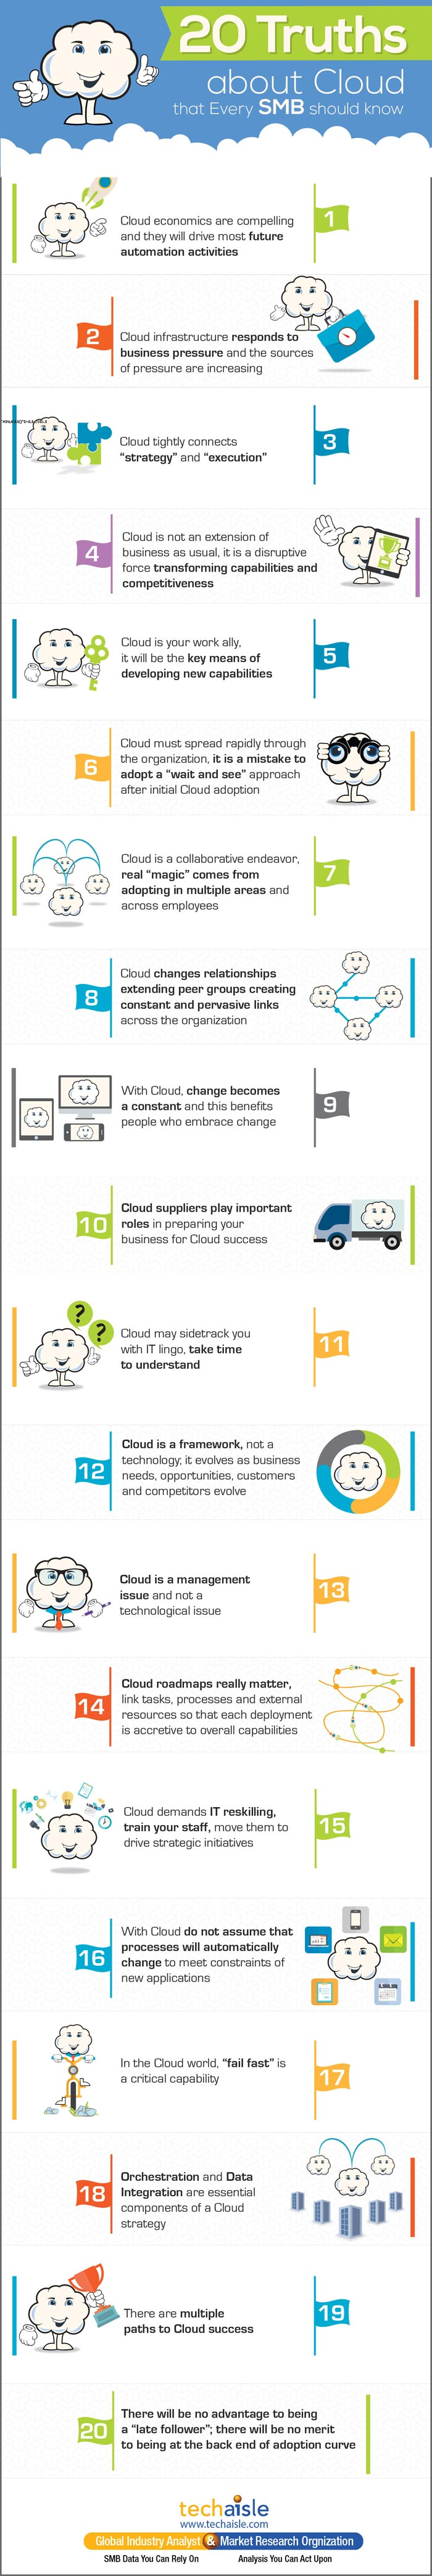 20-truths-about-cloud-every-smb-should-know-techaisle-infographics